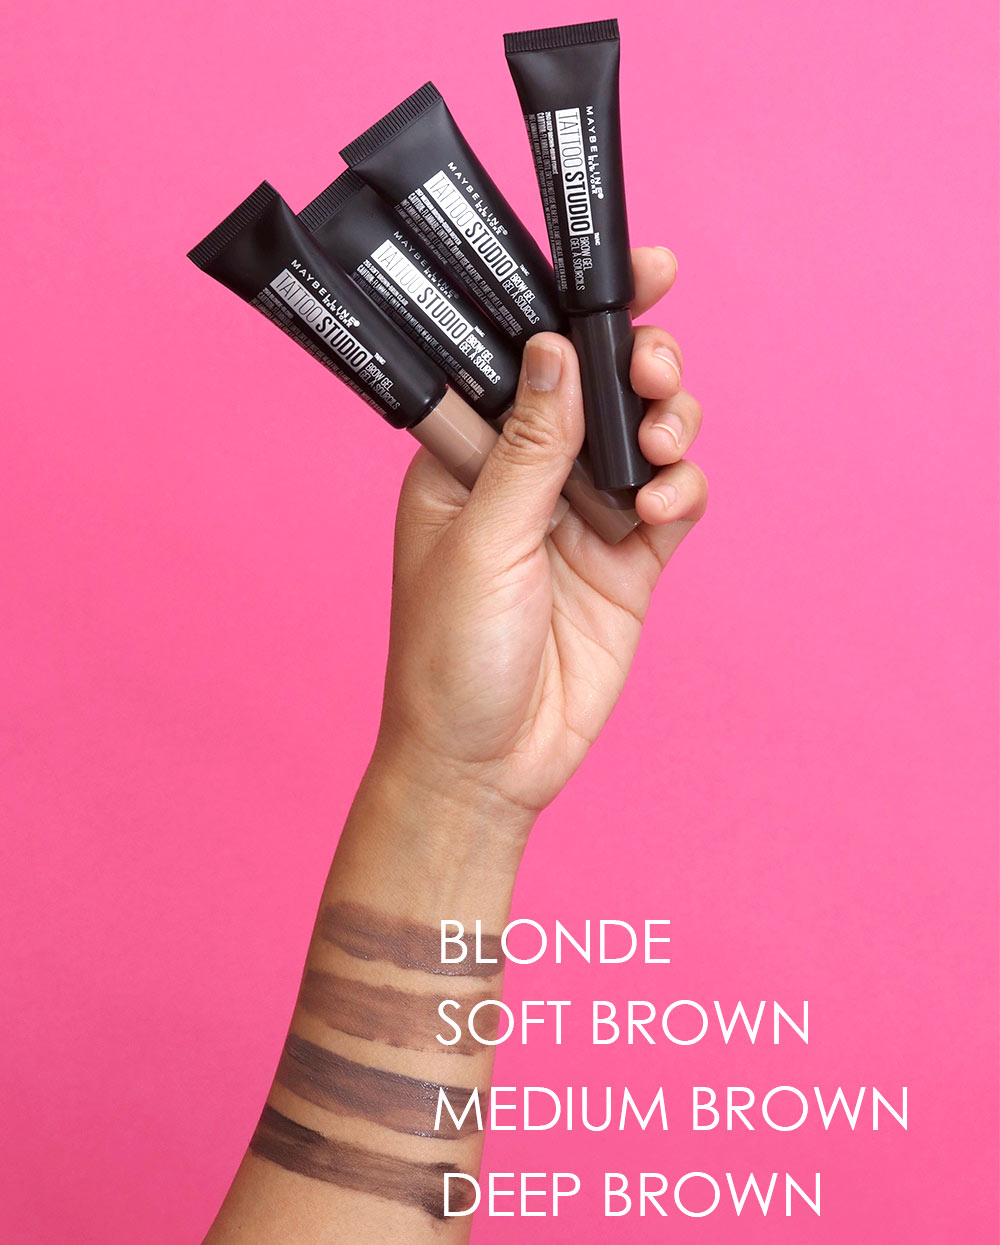 maybelline tattoo studio brow gel swatches before after